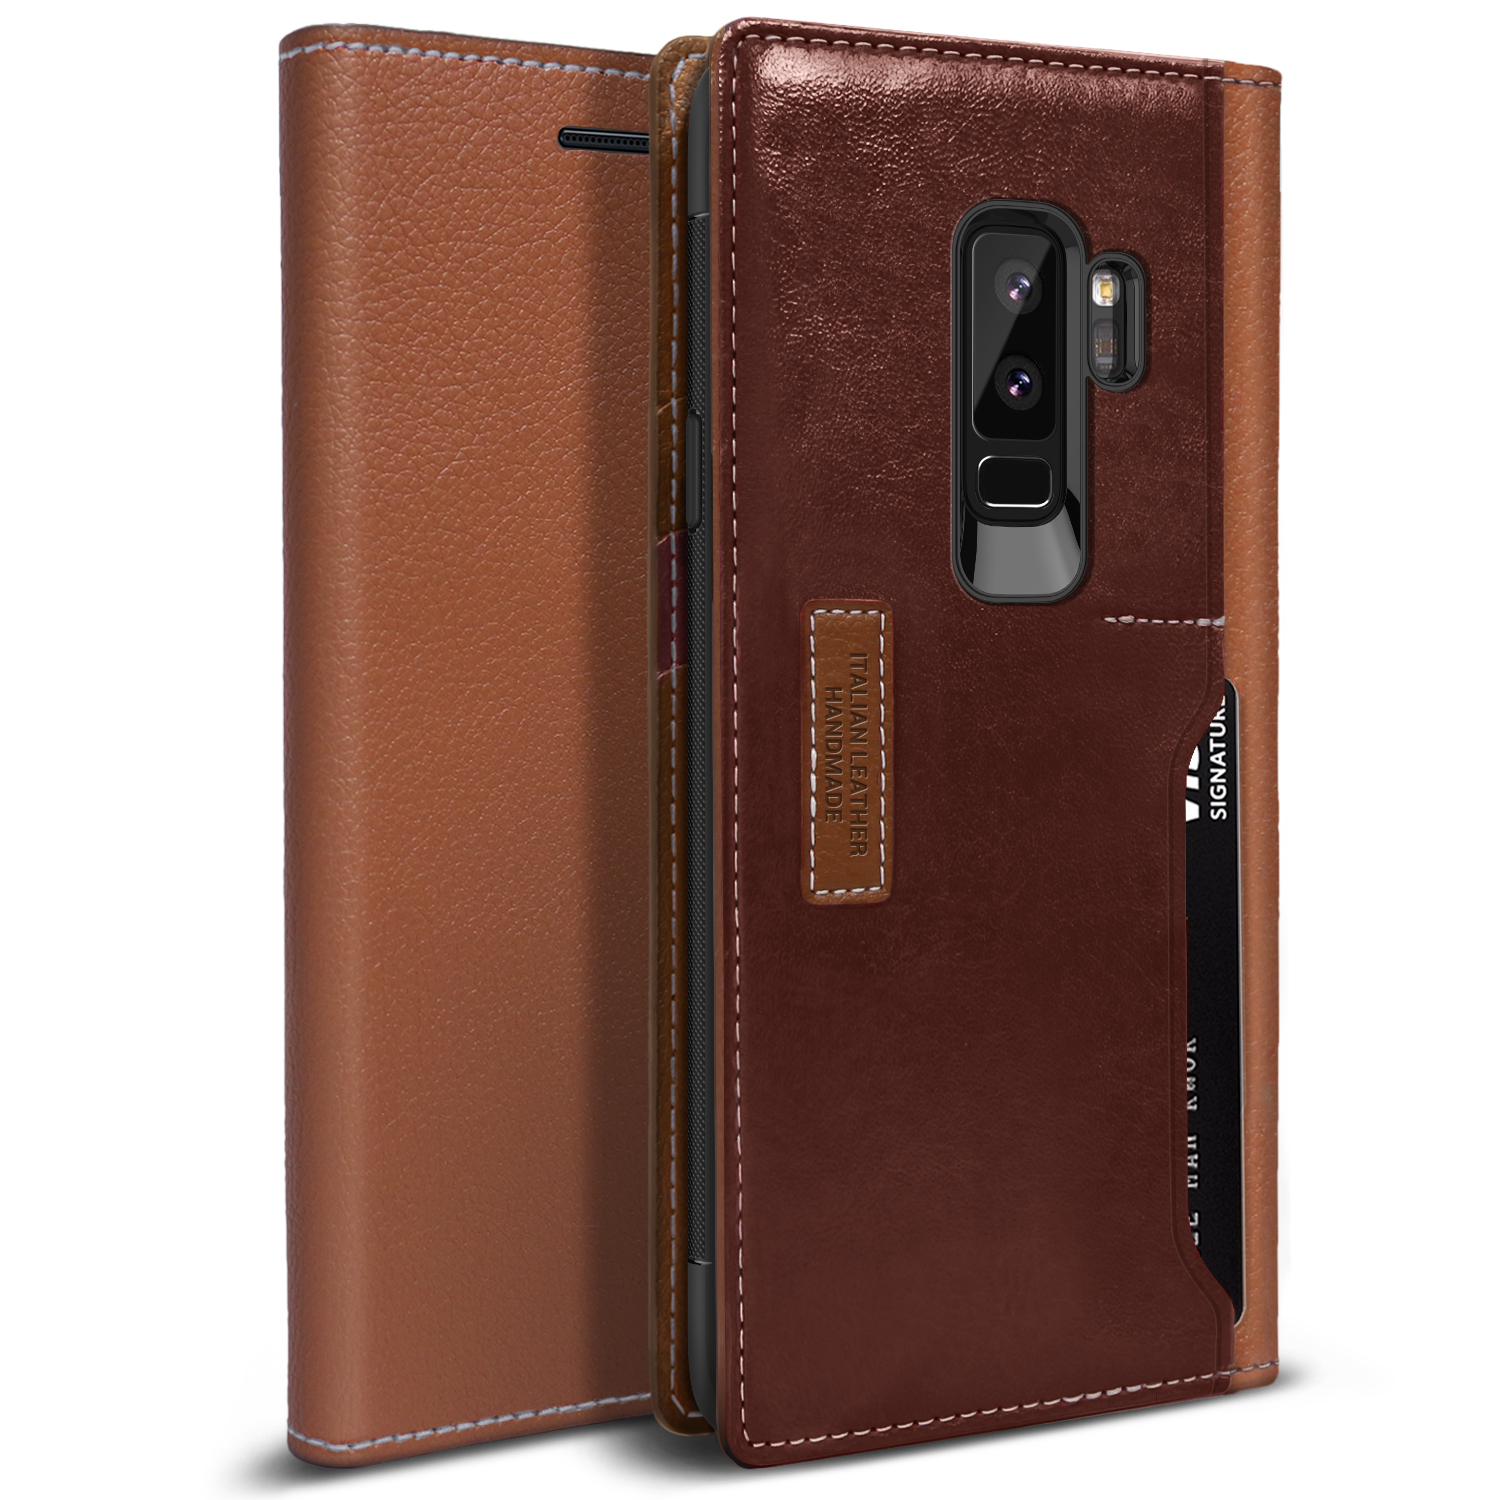 Galaxy S9 PLUS Case, OBLIQ [K3 Wallet][Brown Burgandy][PREMIUM LEATHER] Flip Cover with Four Credit Card & ID Pocket Slots Stylish Wallet Case (for Samsung Galaxy S9 PLUS) (2018)